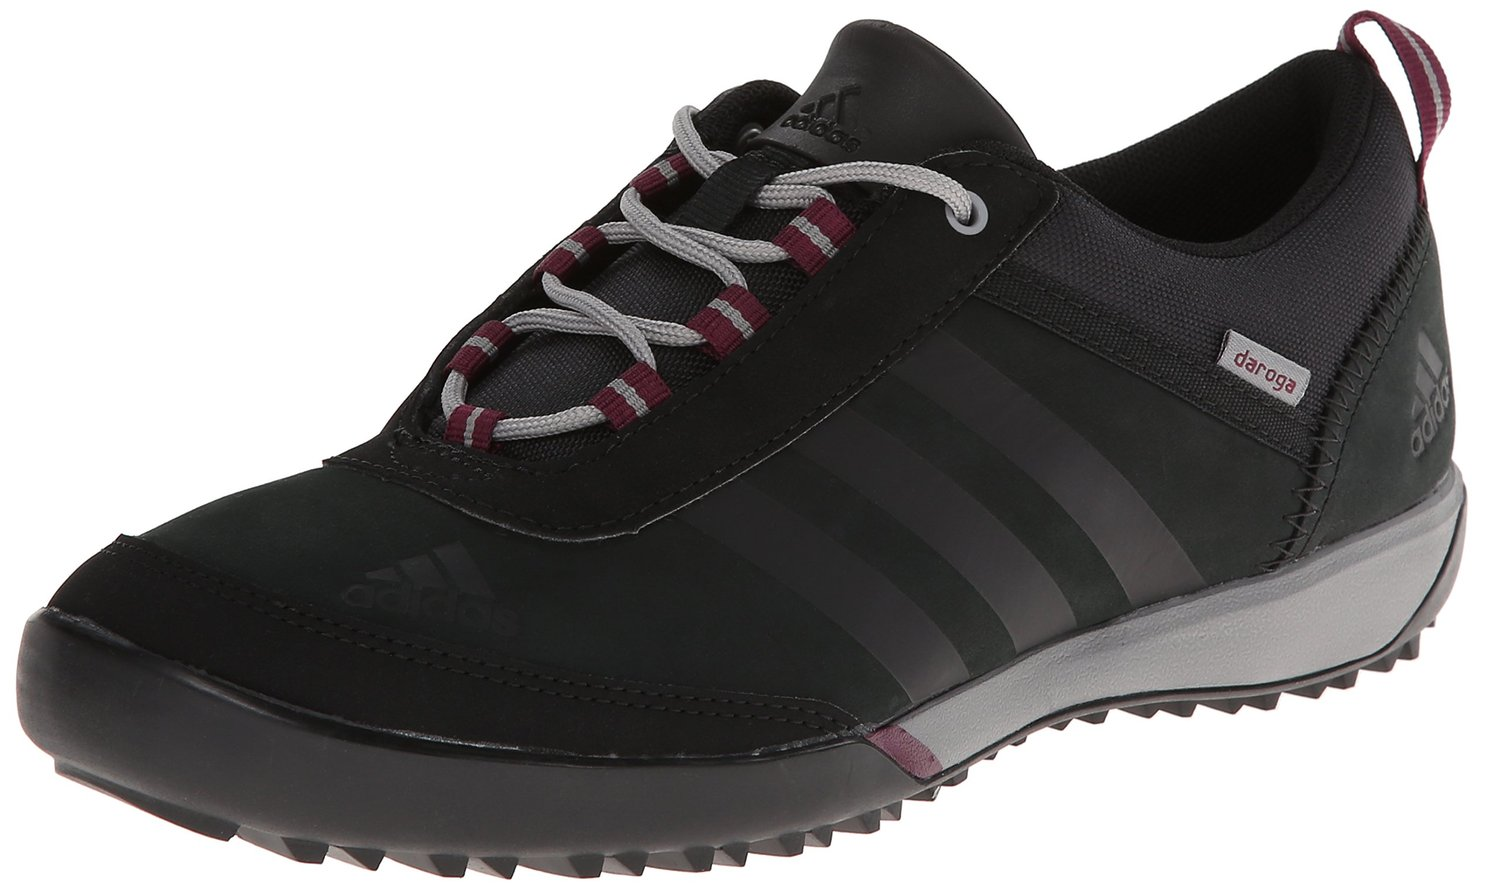 Adidas Daroga Leather Shoes Review